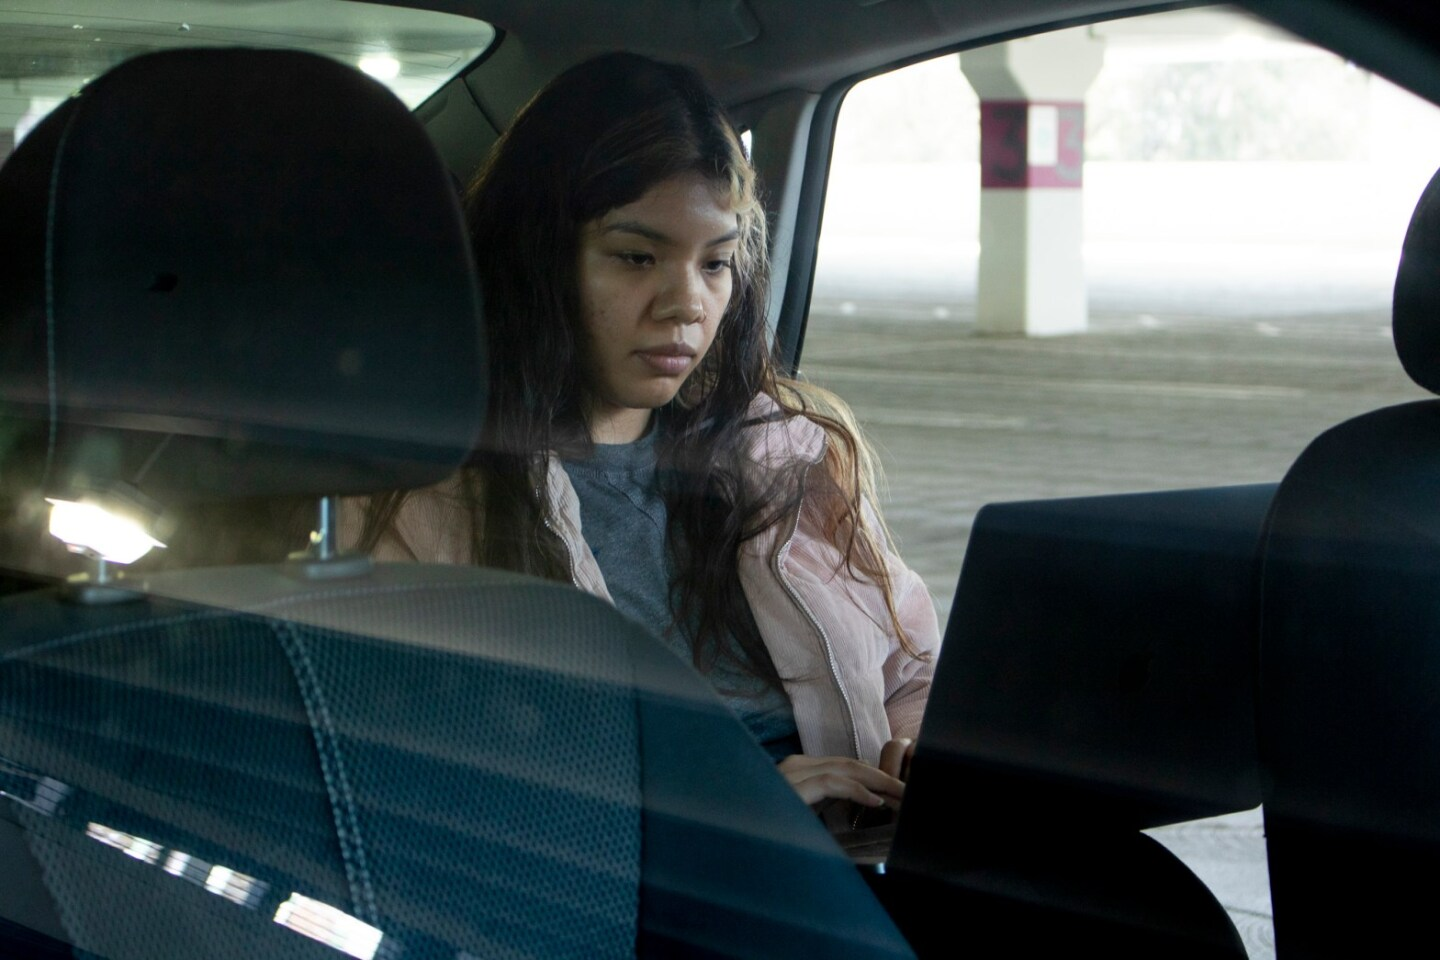 Psychology major Iris Perez completes classwork in her car in a garage at Sacramento State University onMarch 11, 2020.